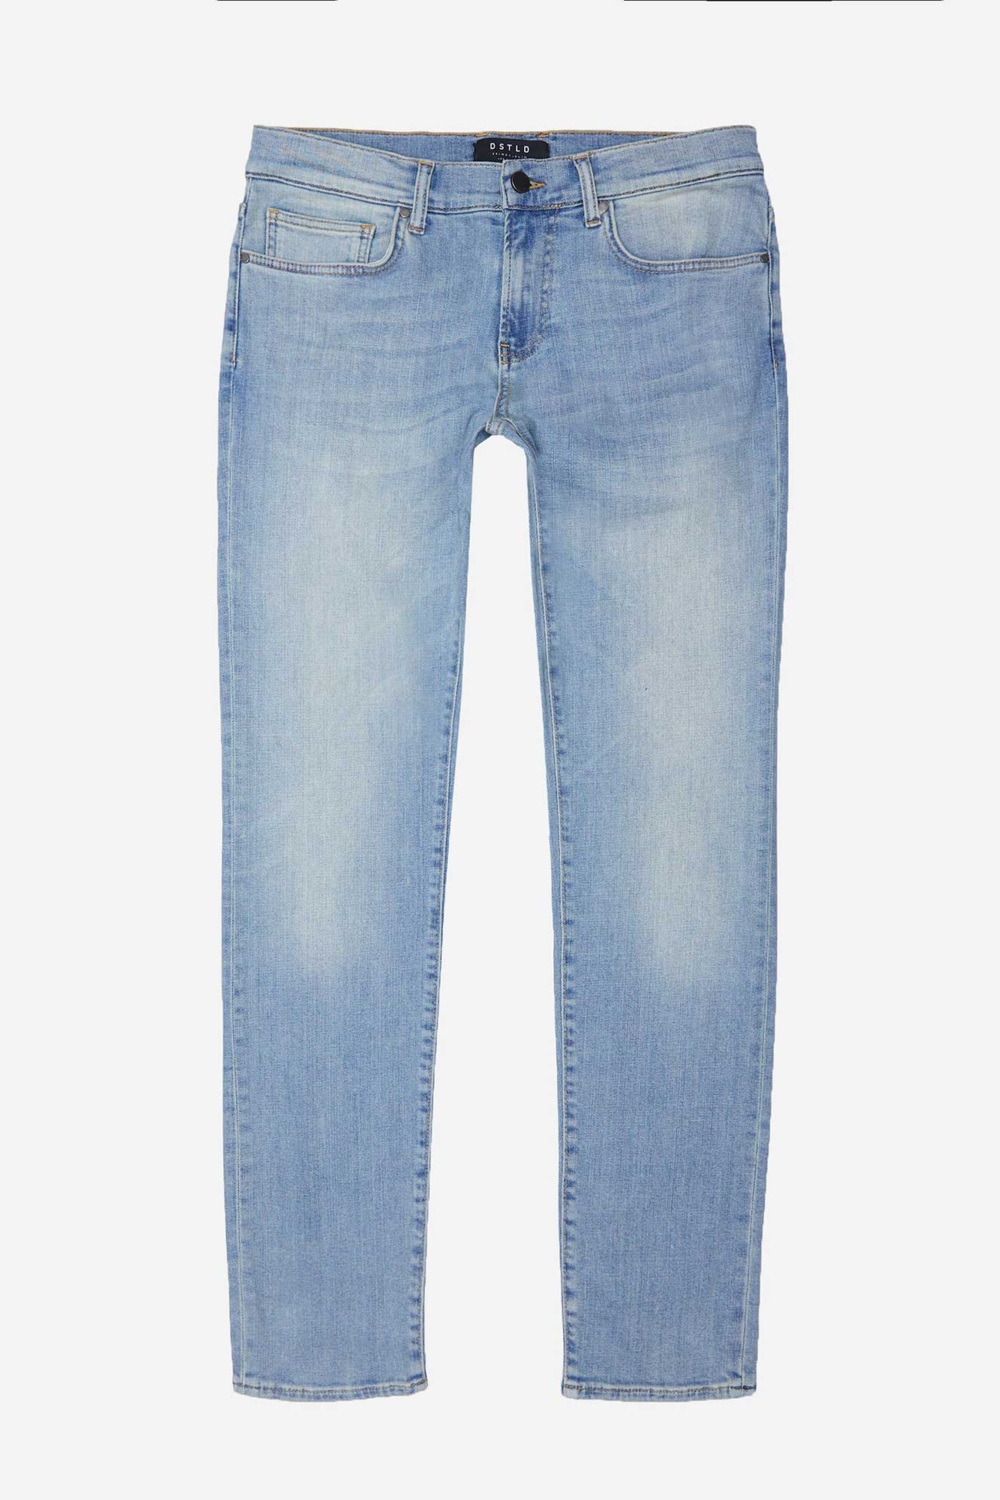 DSTLD mens-skinny-slim-jeans-in-light-wash.png